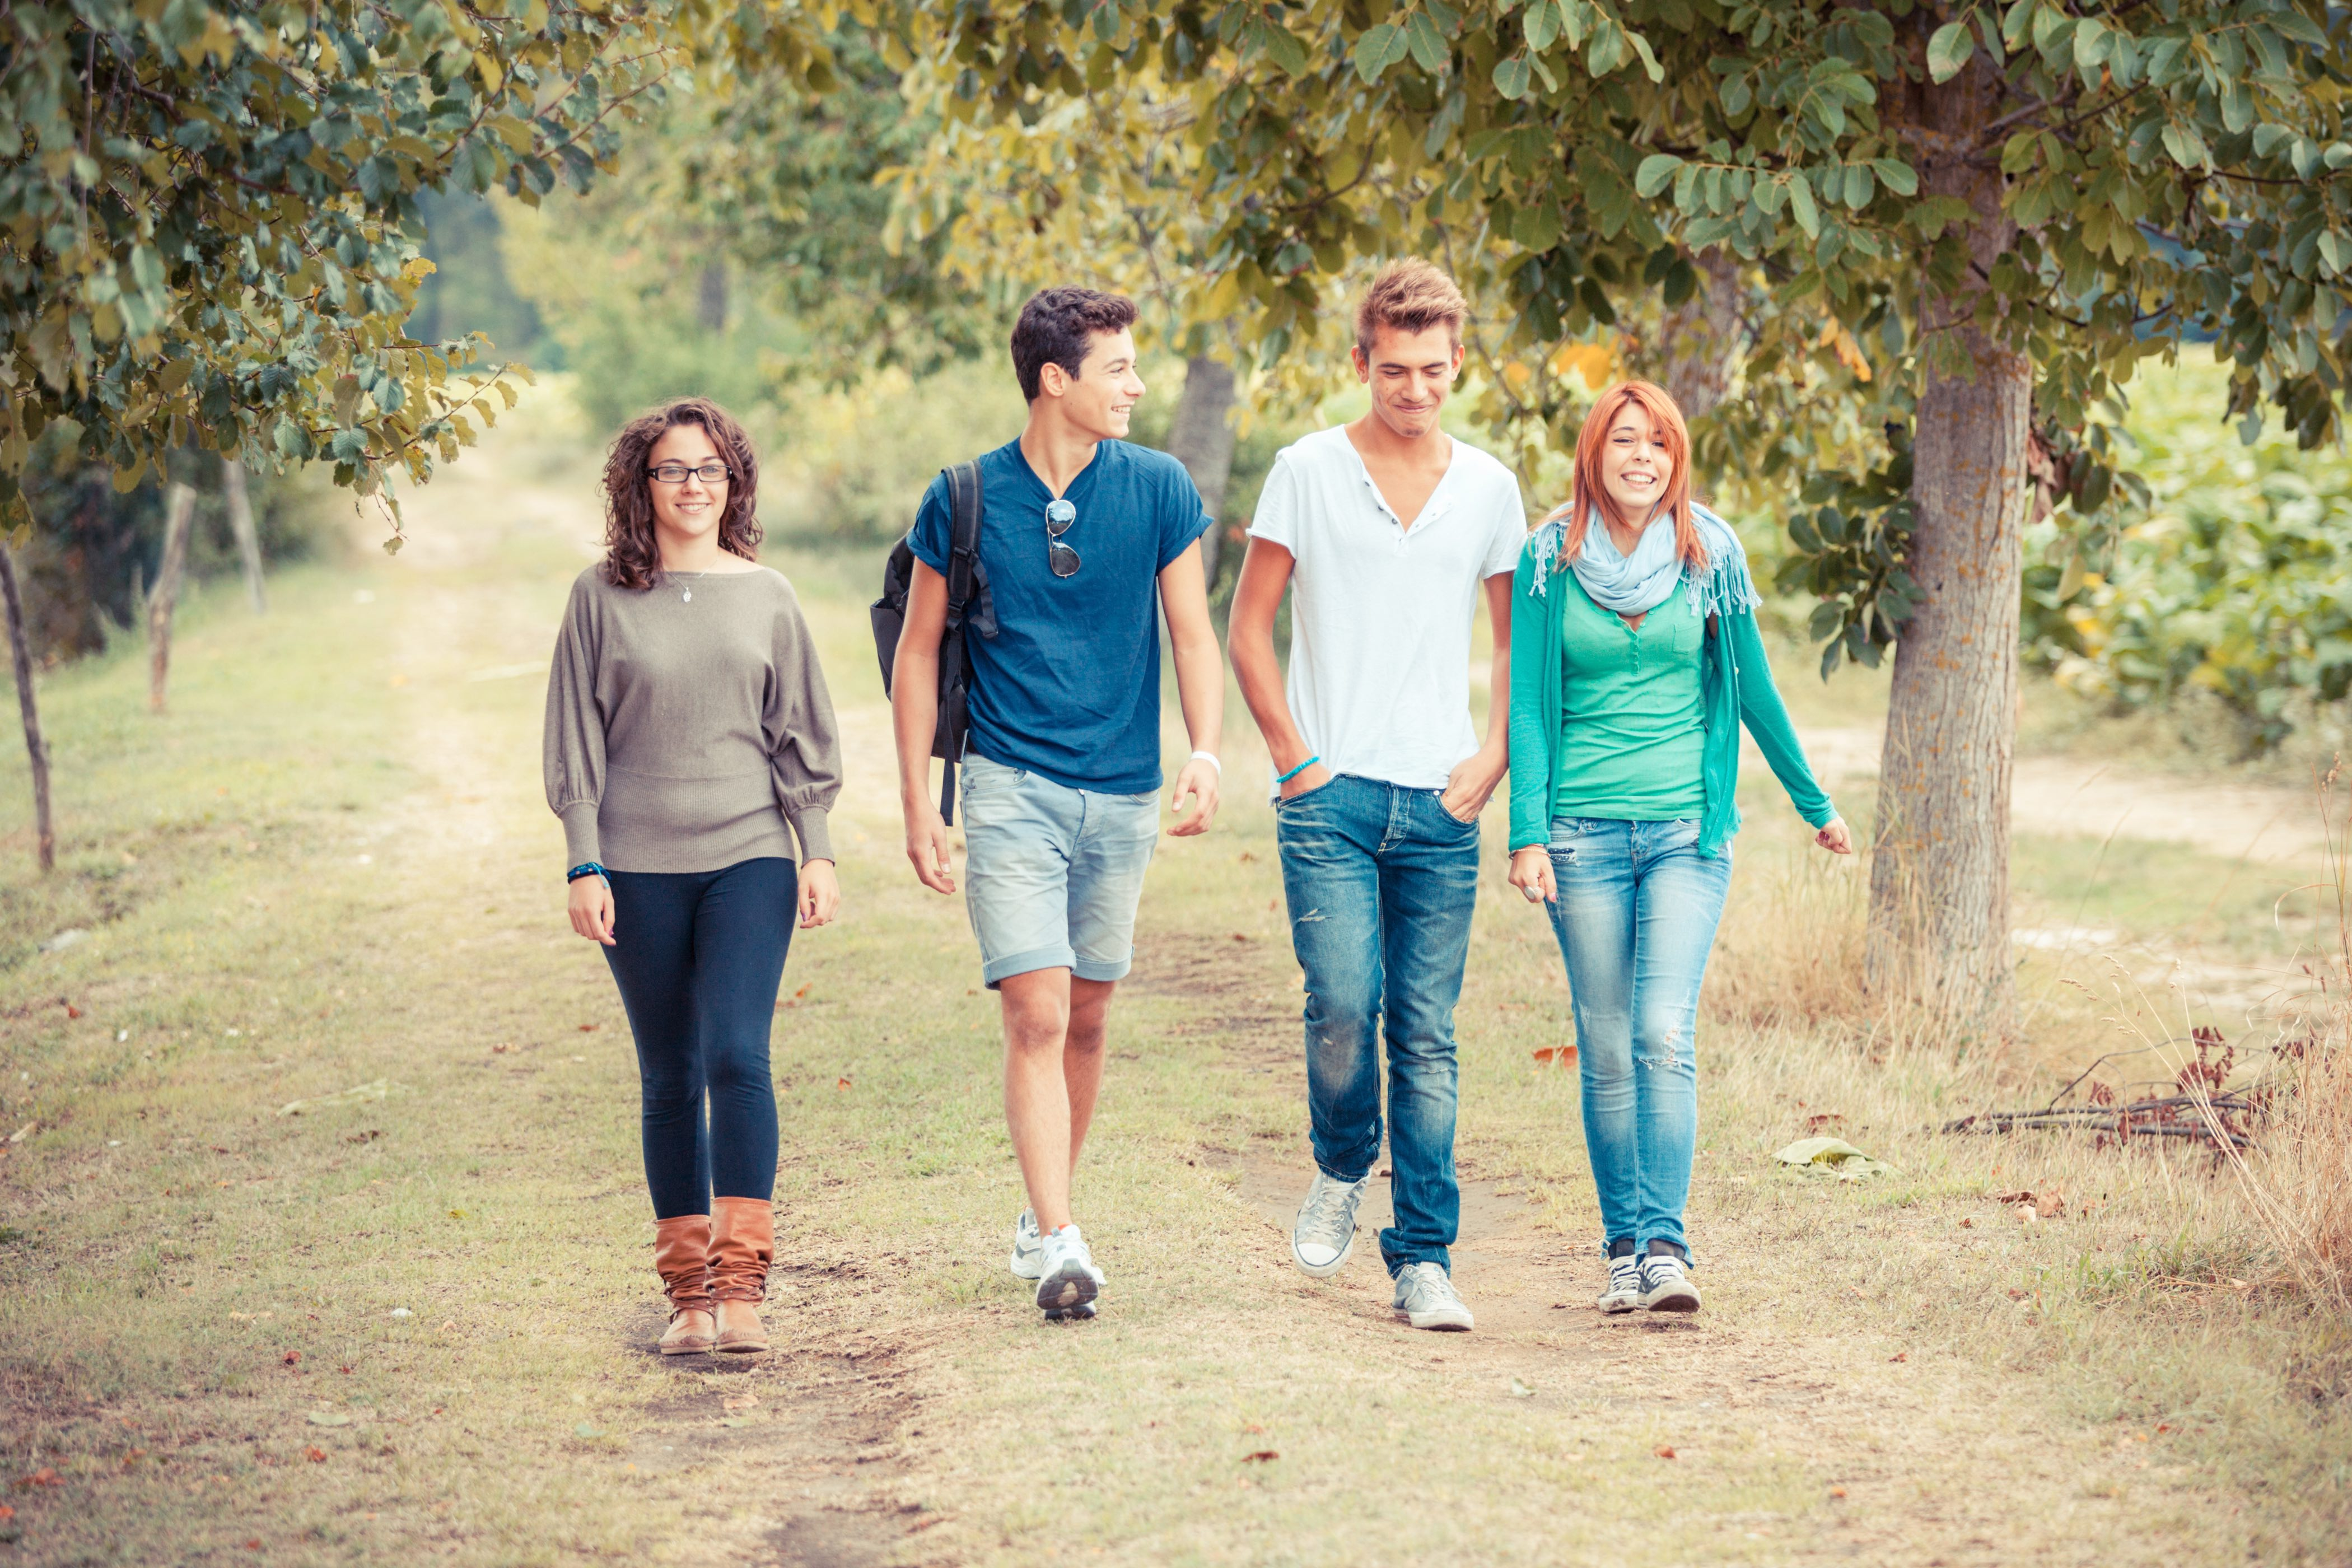 Few of us could have imagined that teenagers would one day be denied the opportunity to walk outside with friends. (William Perugini/Shutterstock)